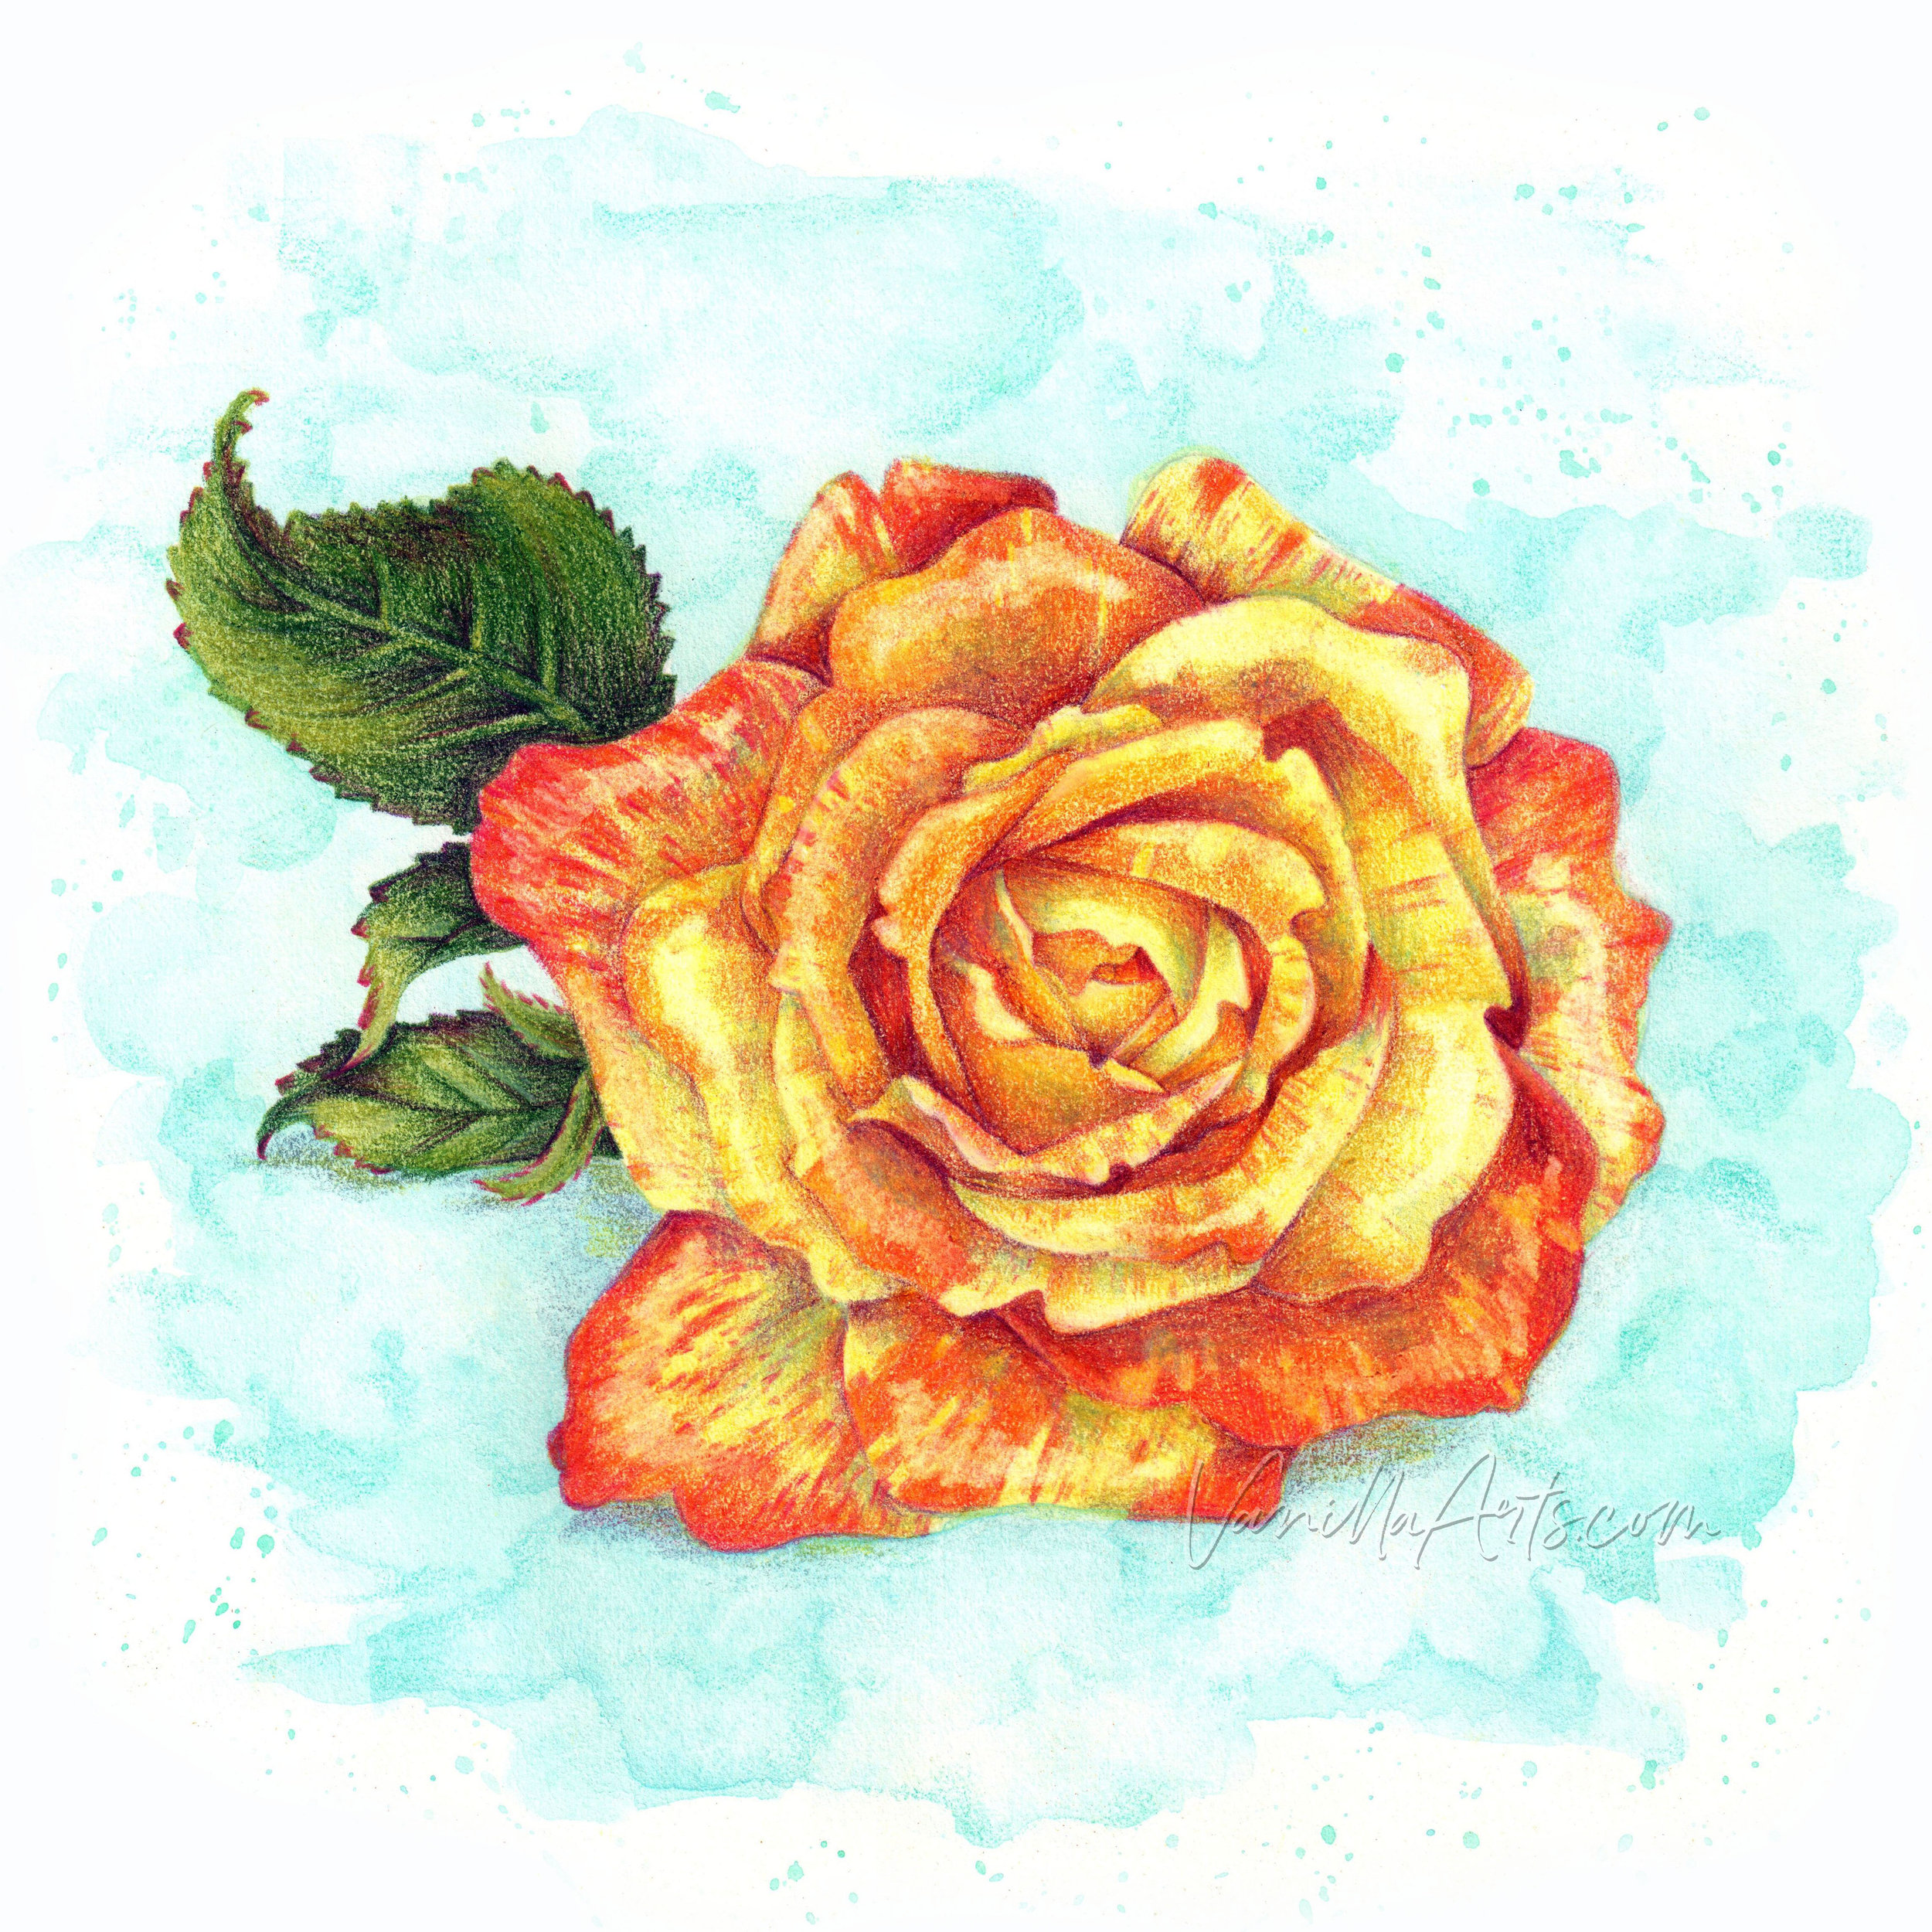 Learn to use colored pencil with artistry and amazing dimension. If you want to move beyond fill-in-the-blank style coloring, you need to ditch the crafty tutorials. Color like an artist!   ColoredPencilPlus.com